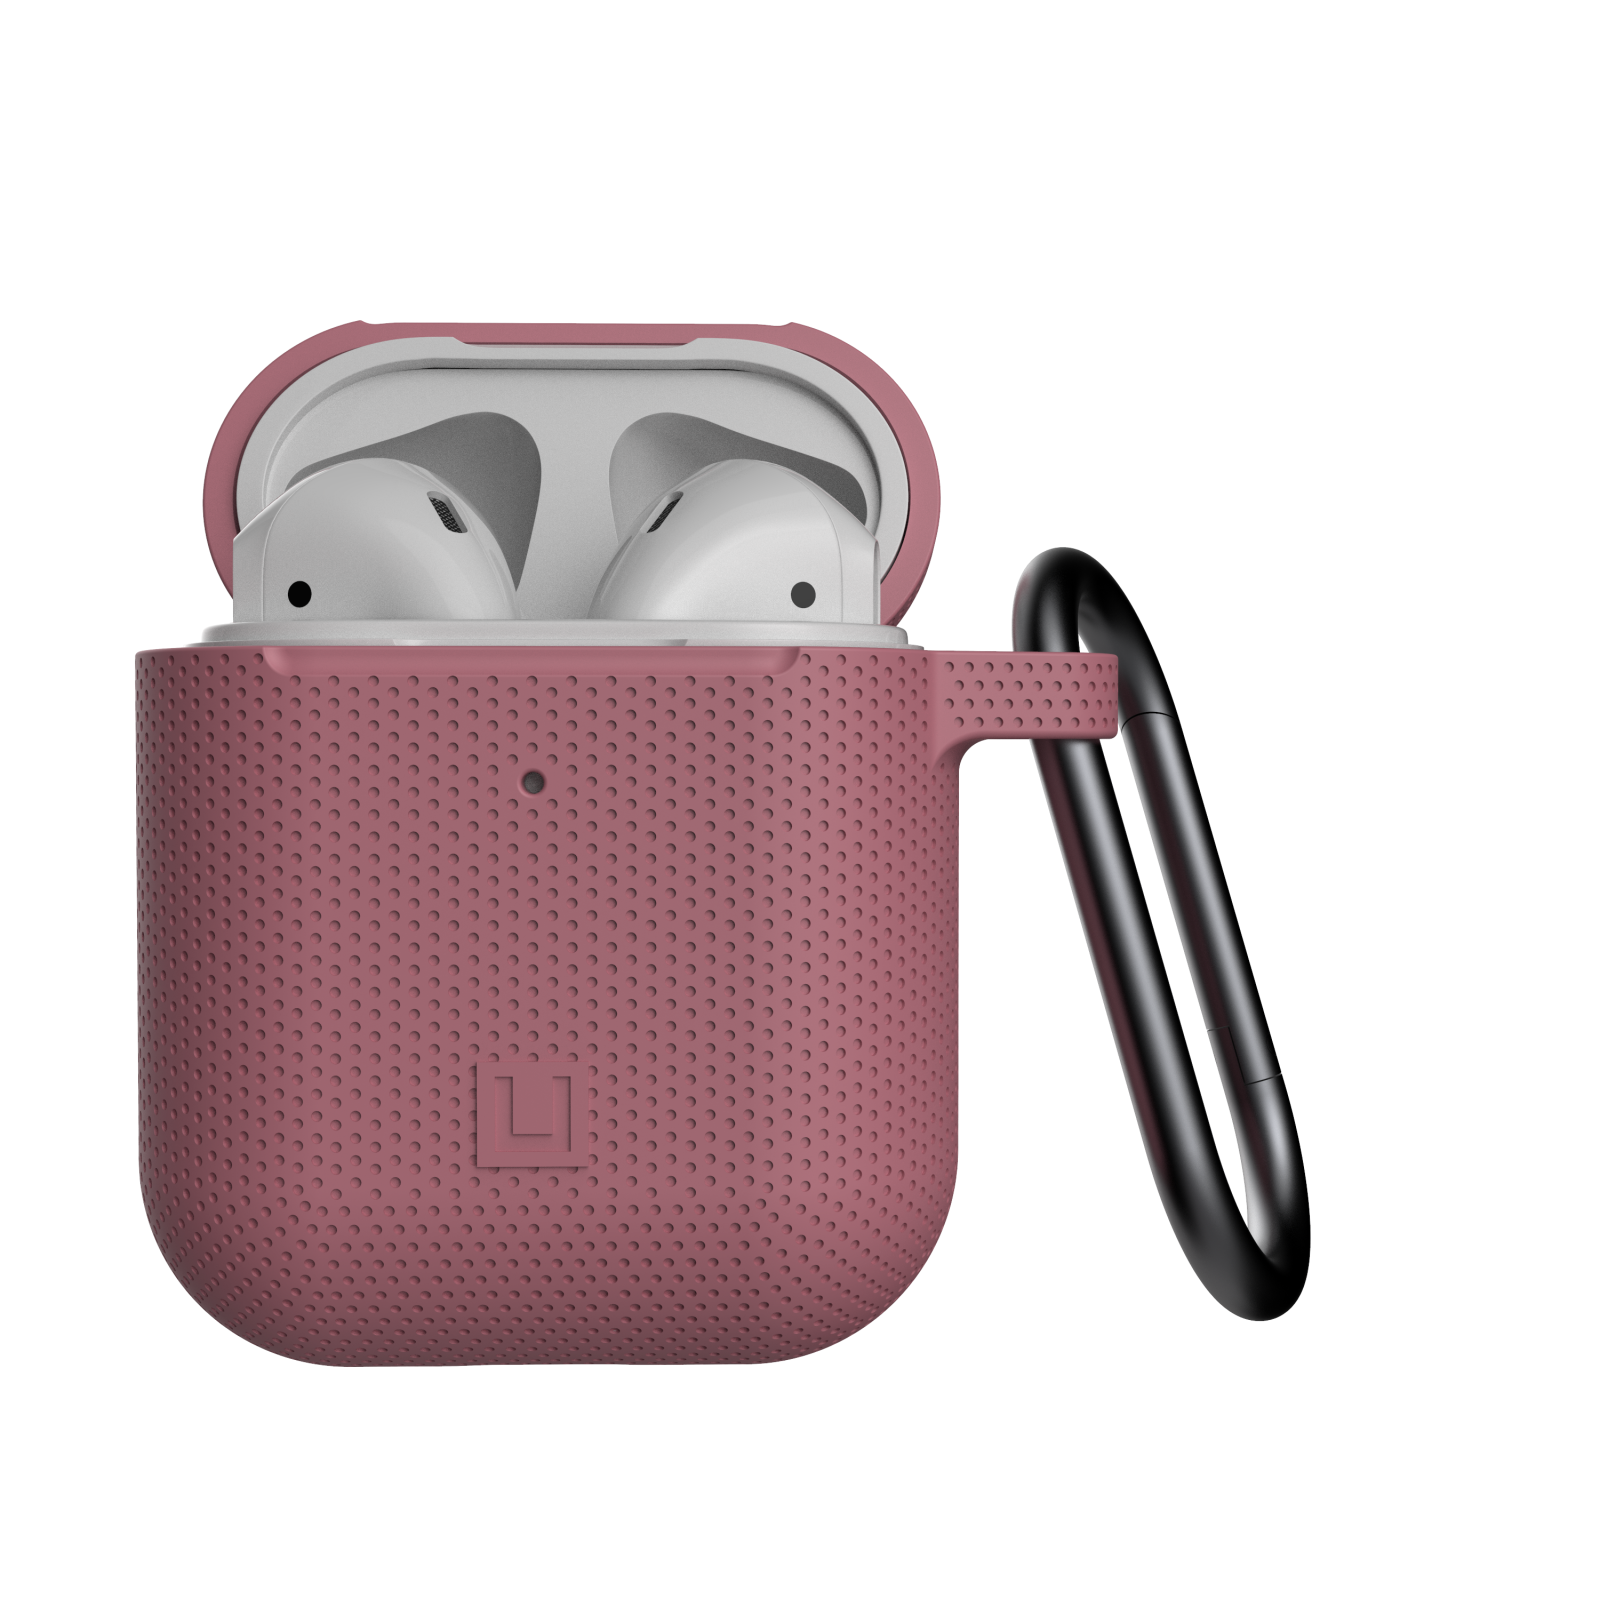 [U] ỐP DẺO UAG SILICON CHO AIRPODS GEN 1/2 - Dustry Rose